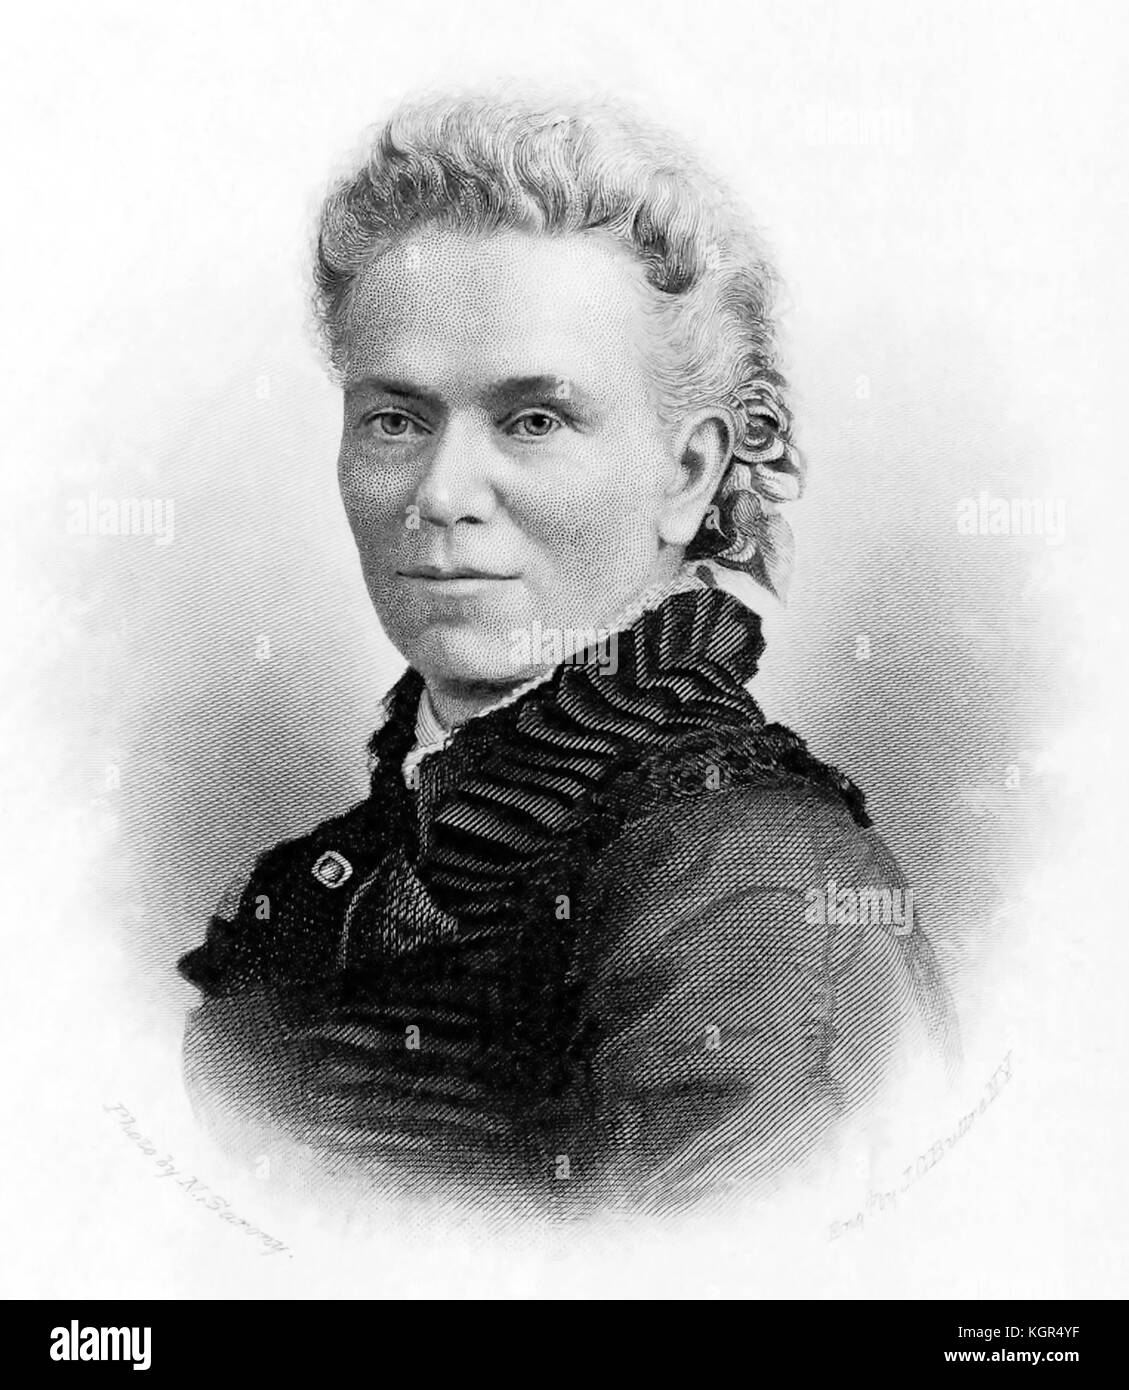 MATILDA GAGE (1826-1898) Native American rights activist - Stock Image